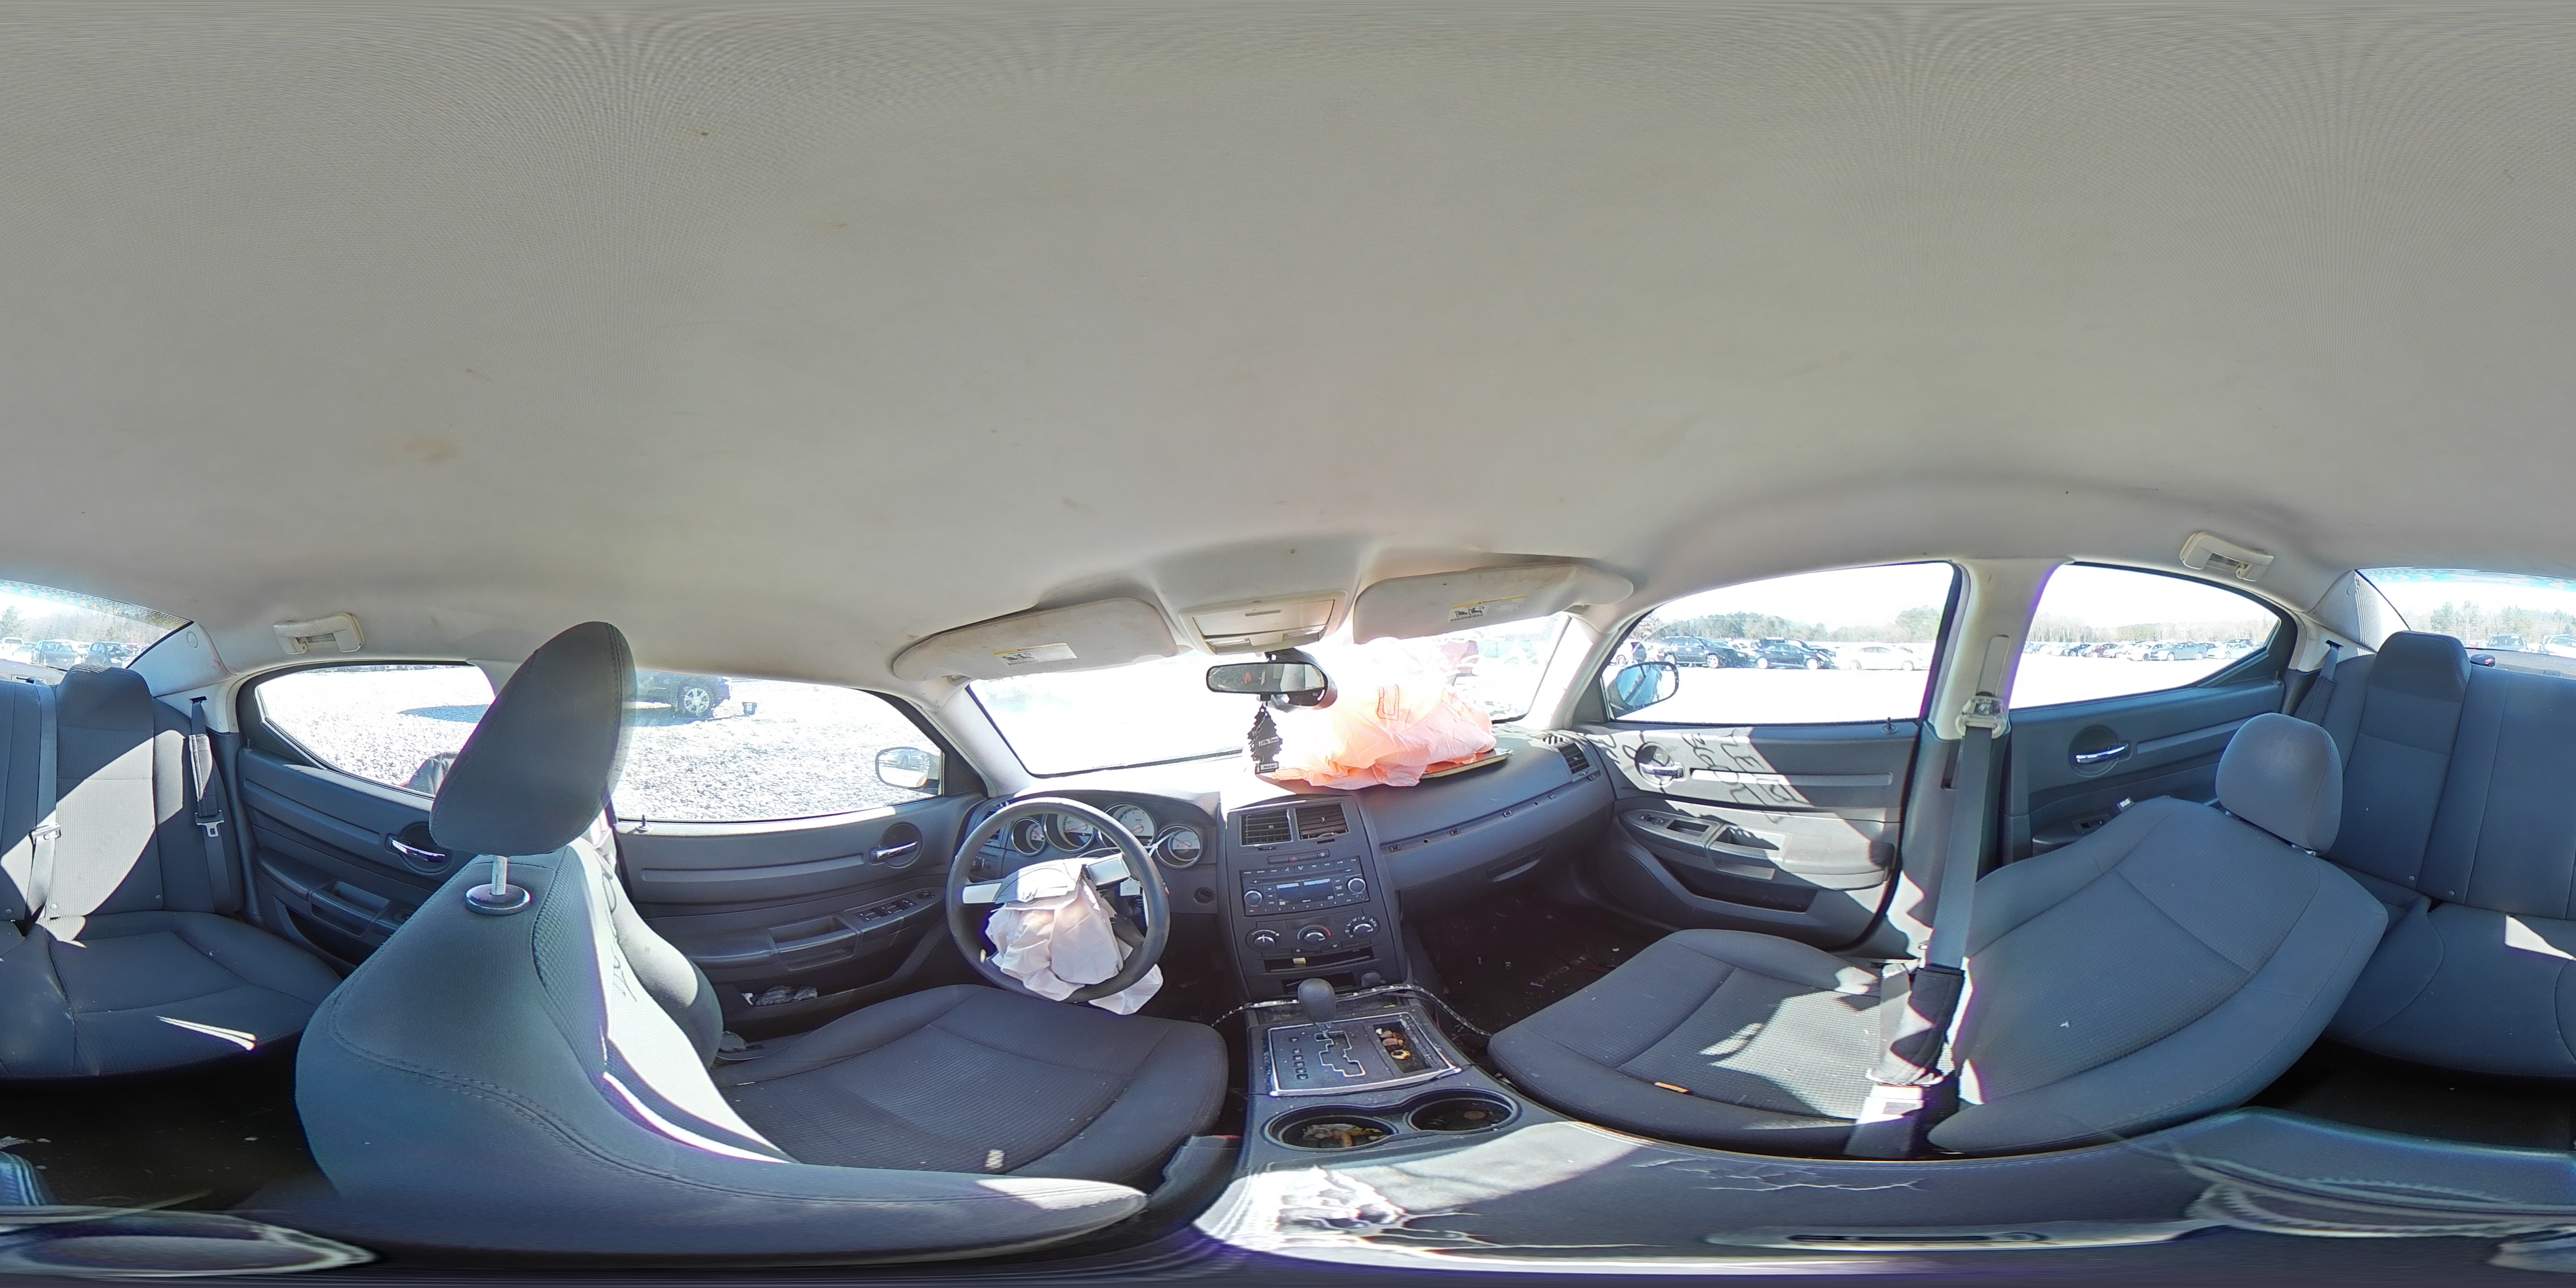 2008 DODGE CHARGER - Other View